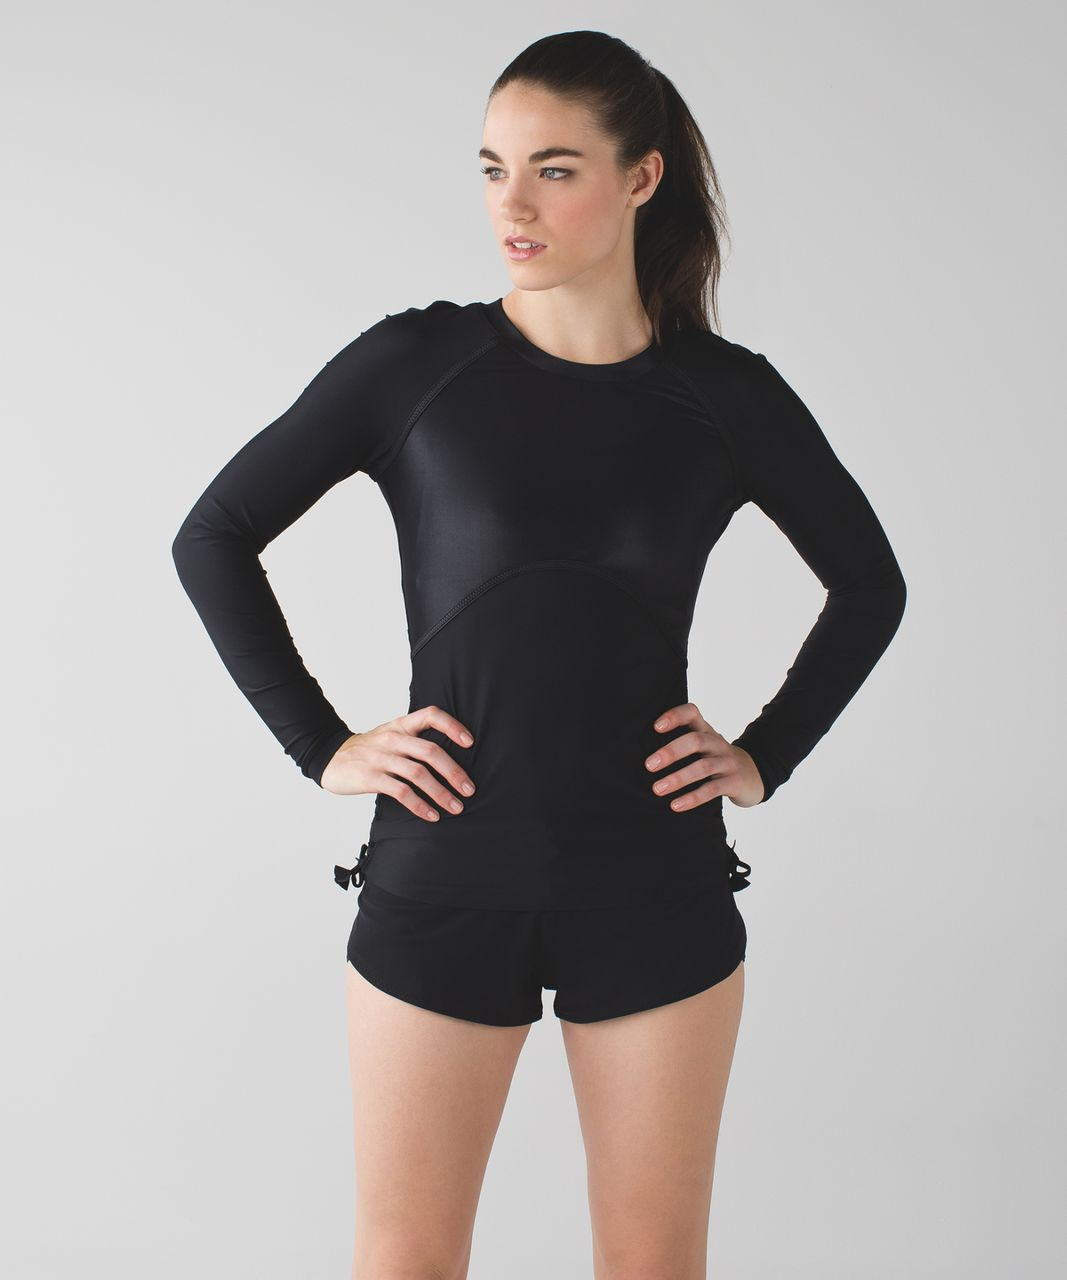 Lululemon Water:  Salty Swim Rashguard - Black